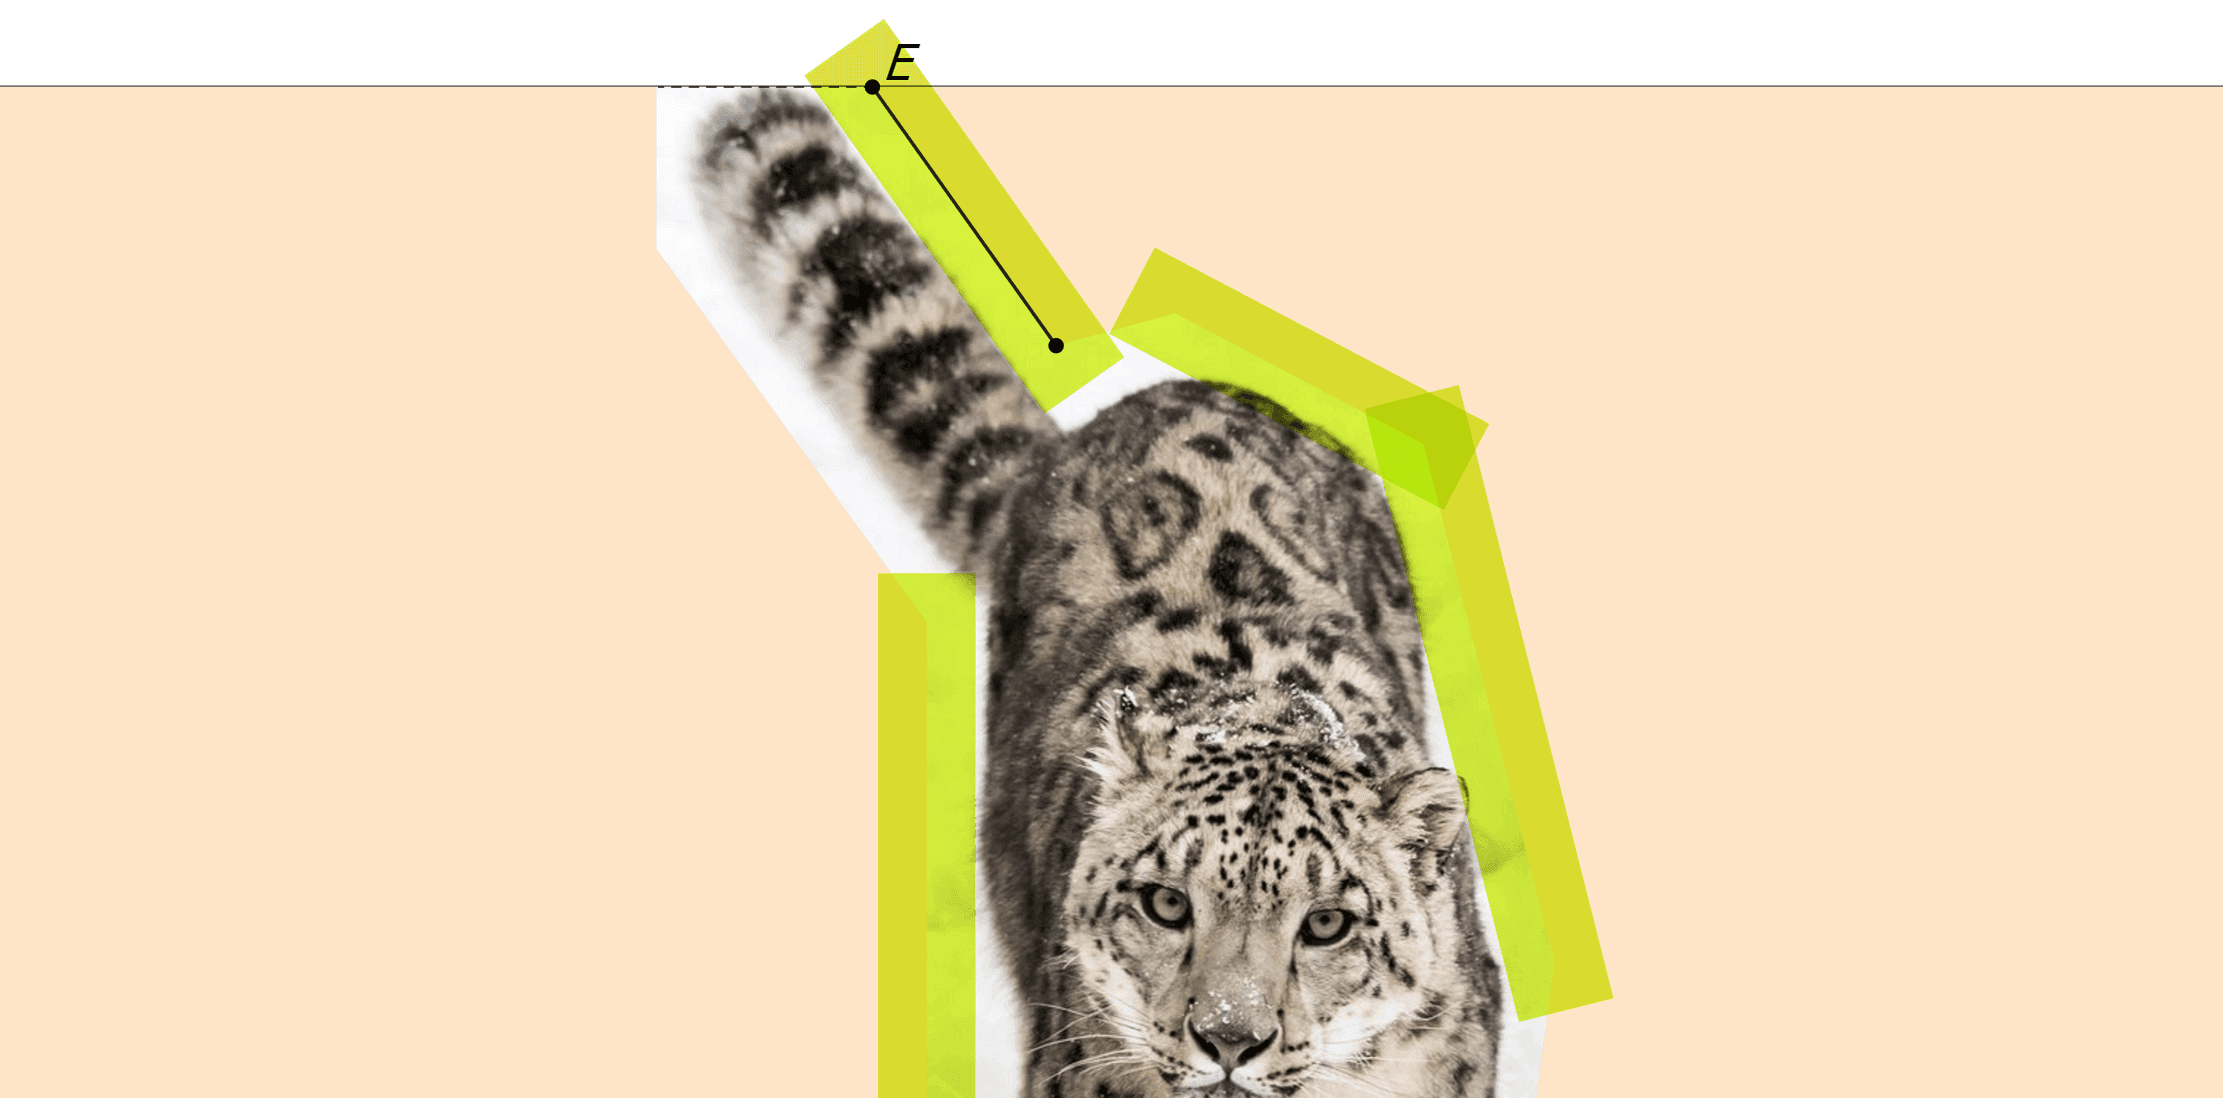 Screenshot showing the result of the latest demo and highlighting an edge which has an end on the top boundary of the original image.